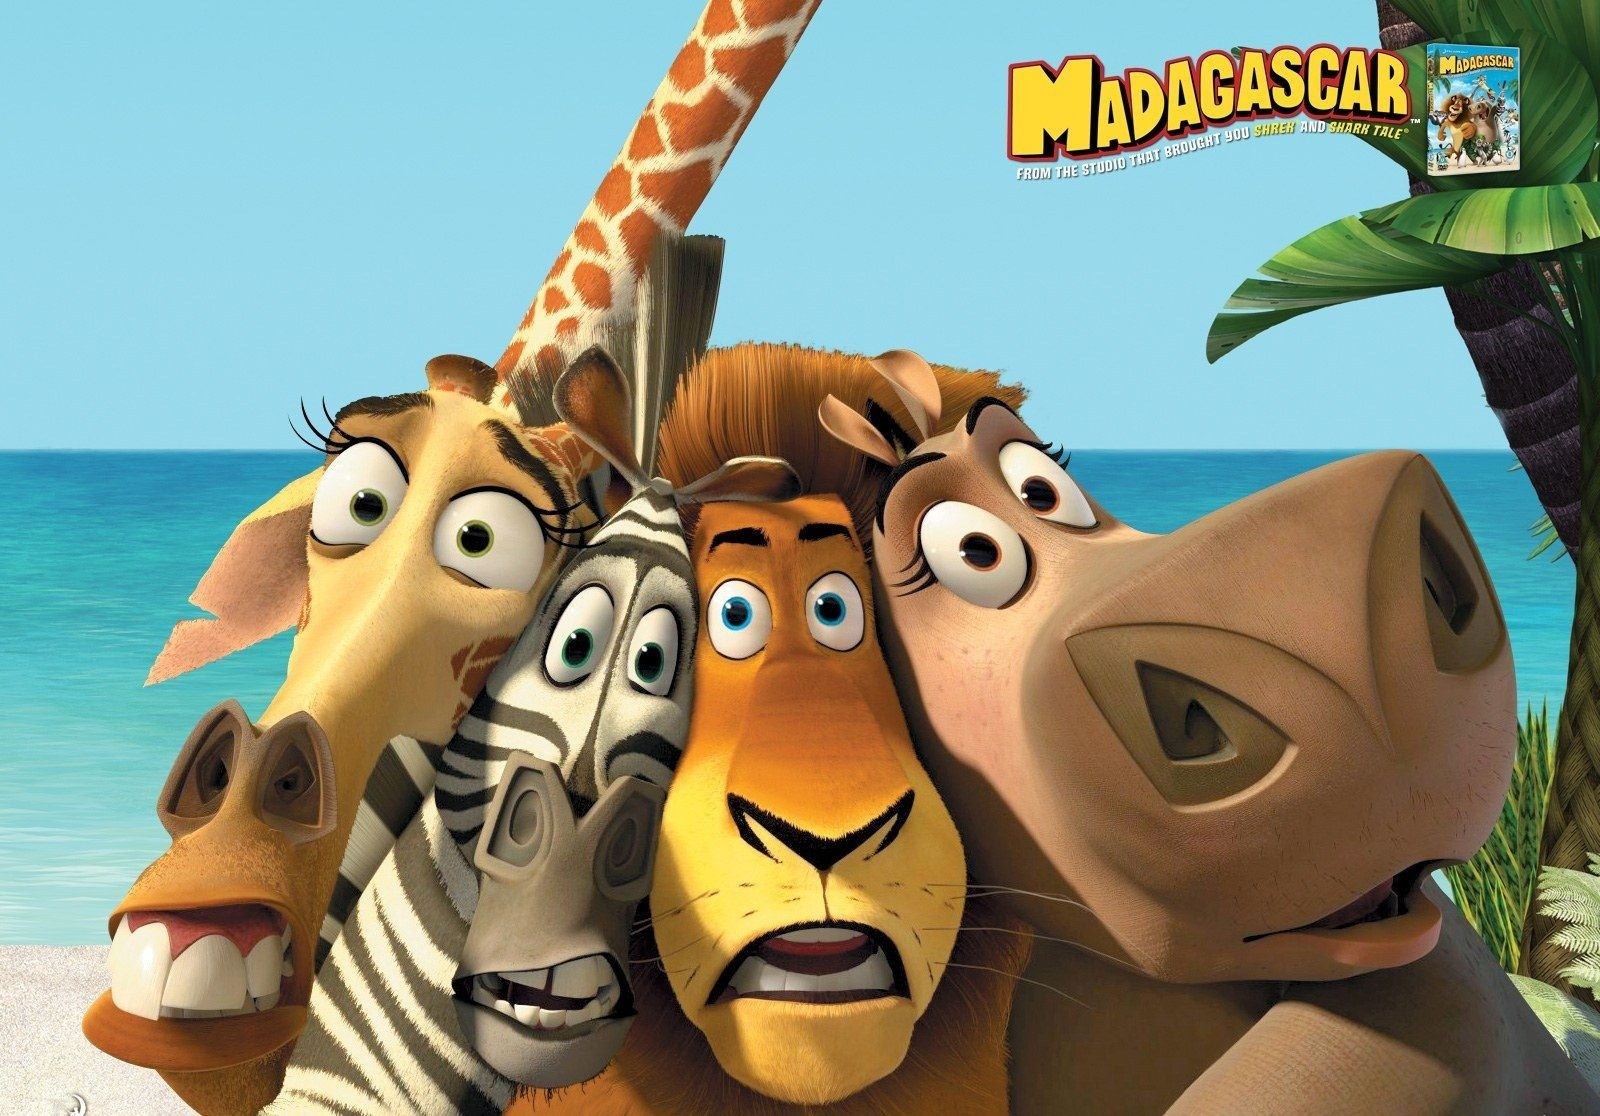 Madagascar 3 Cartoon Characters : Madagascar characters חיפוש ב google